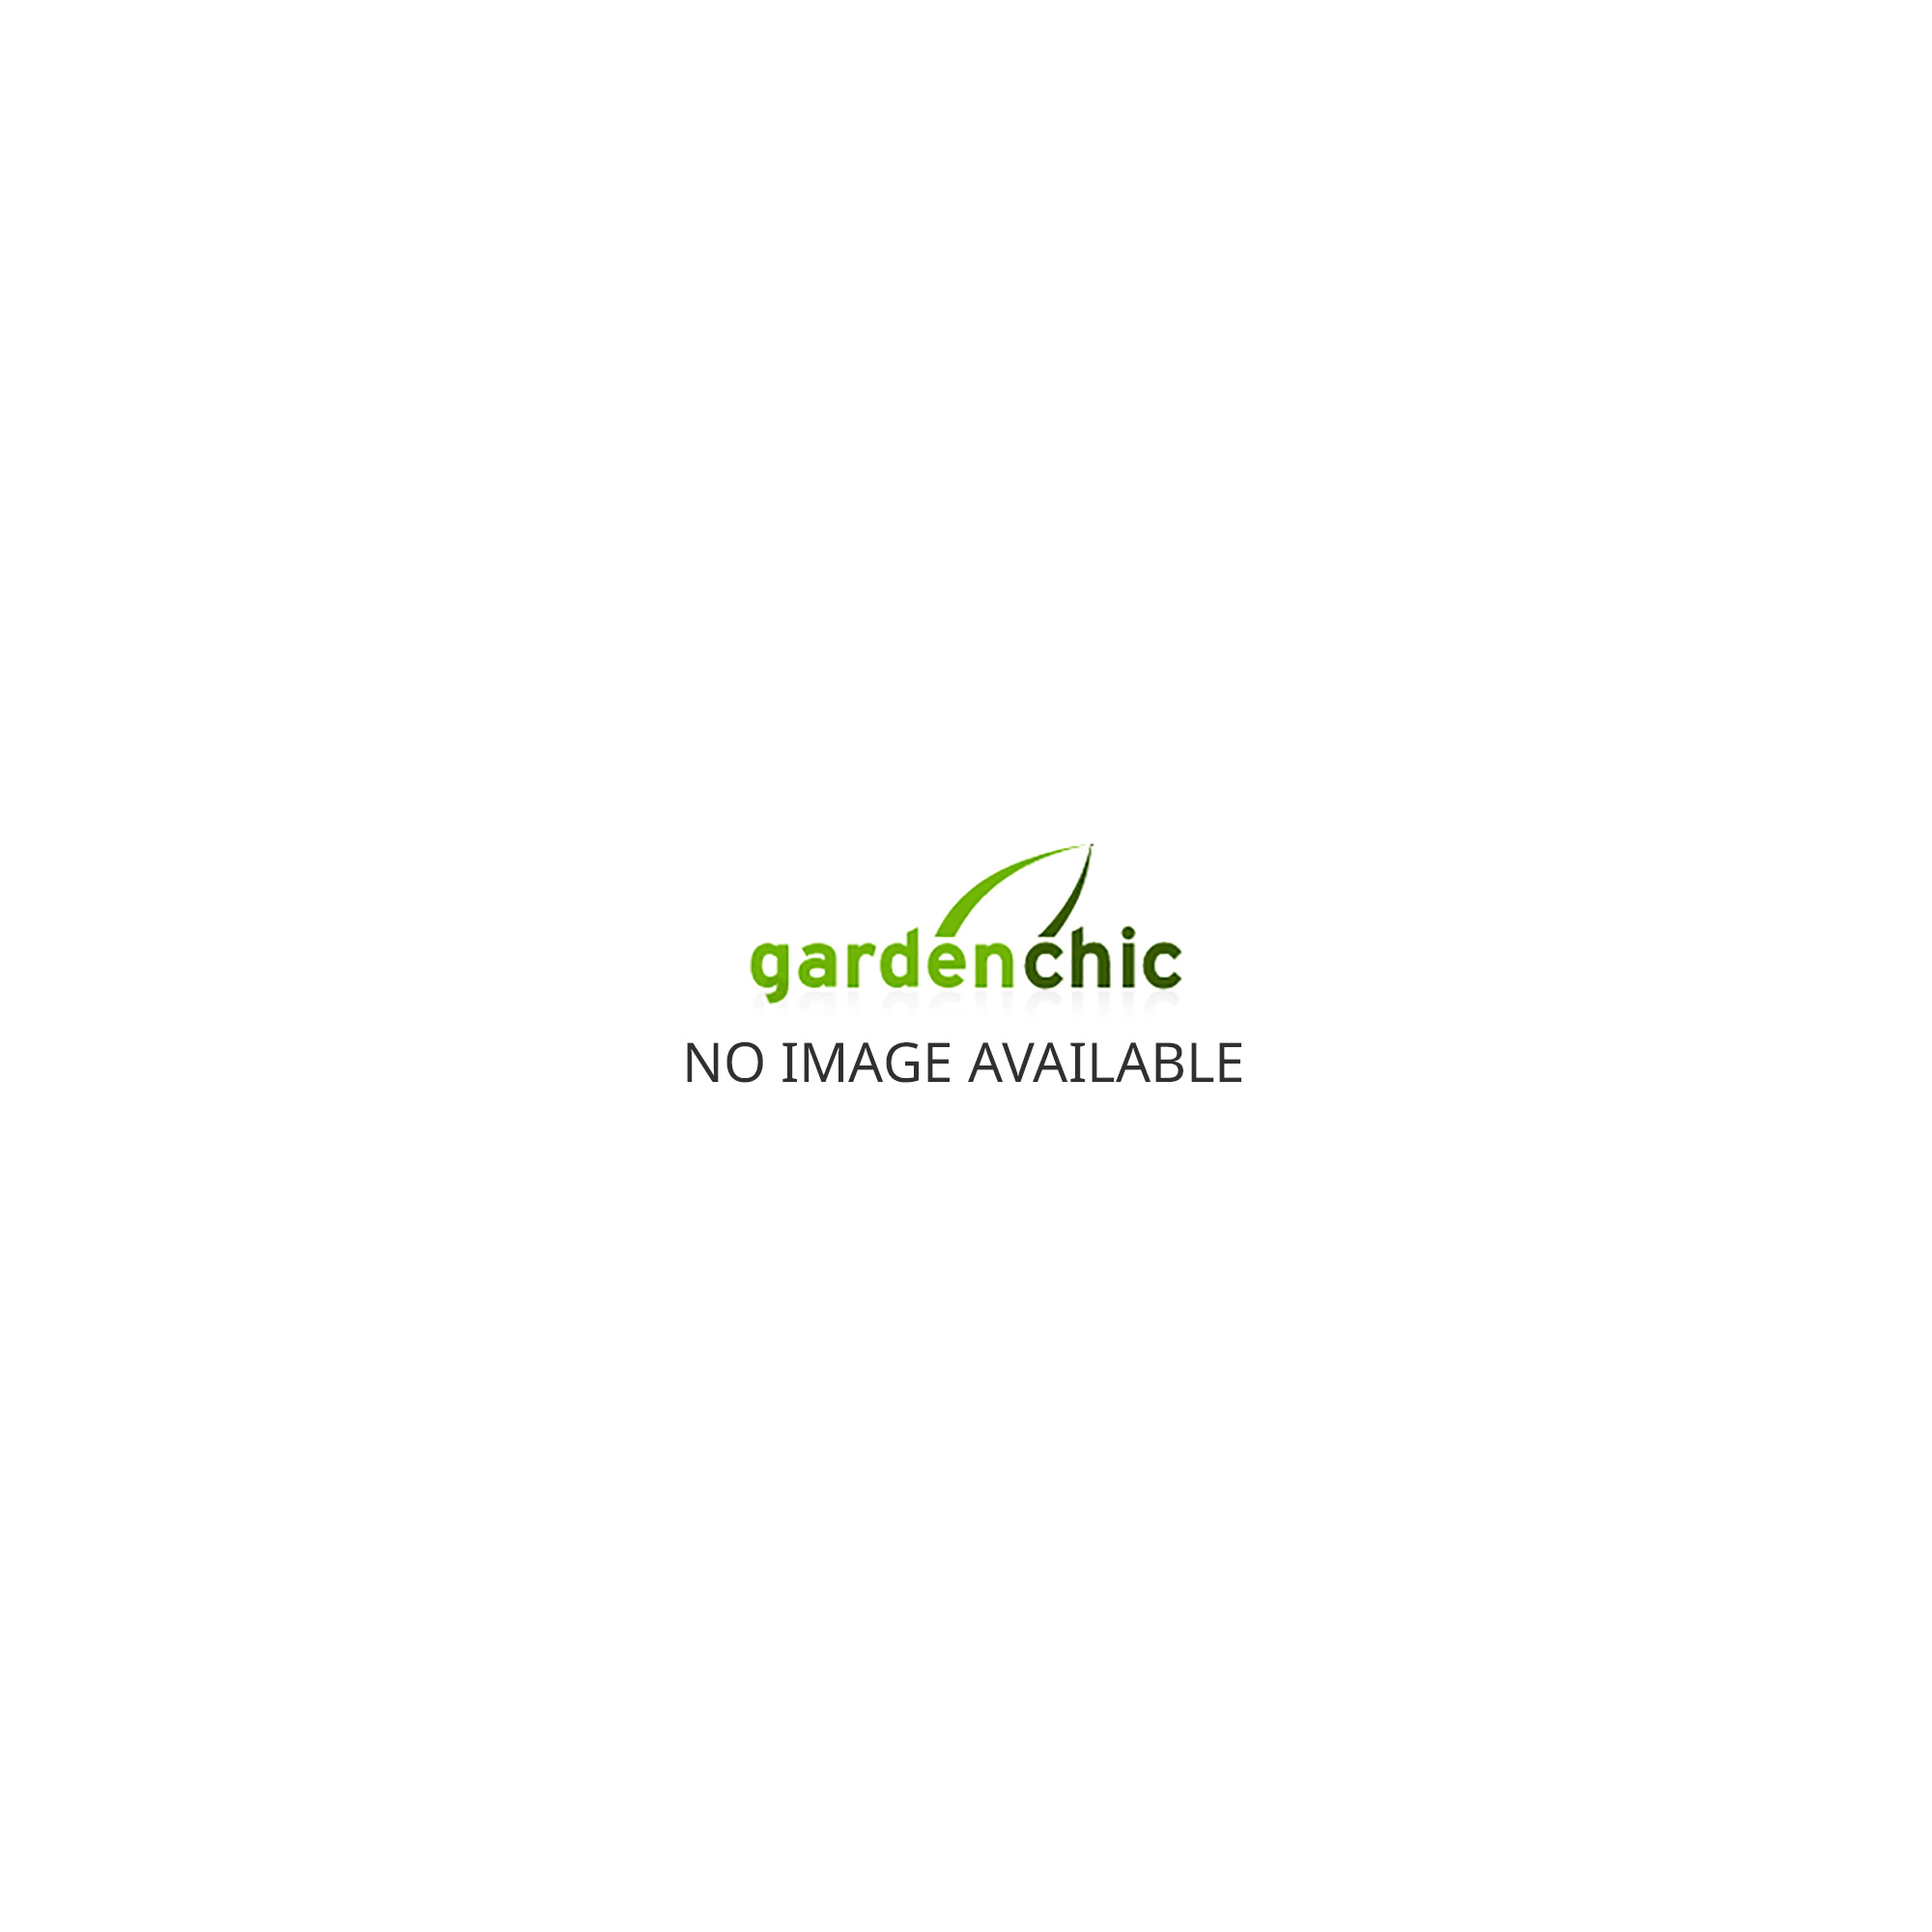 Vitavia Apollo 5000 Greenhouse - Silver FREE Staging until APRIL 2018